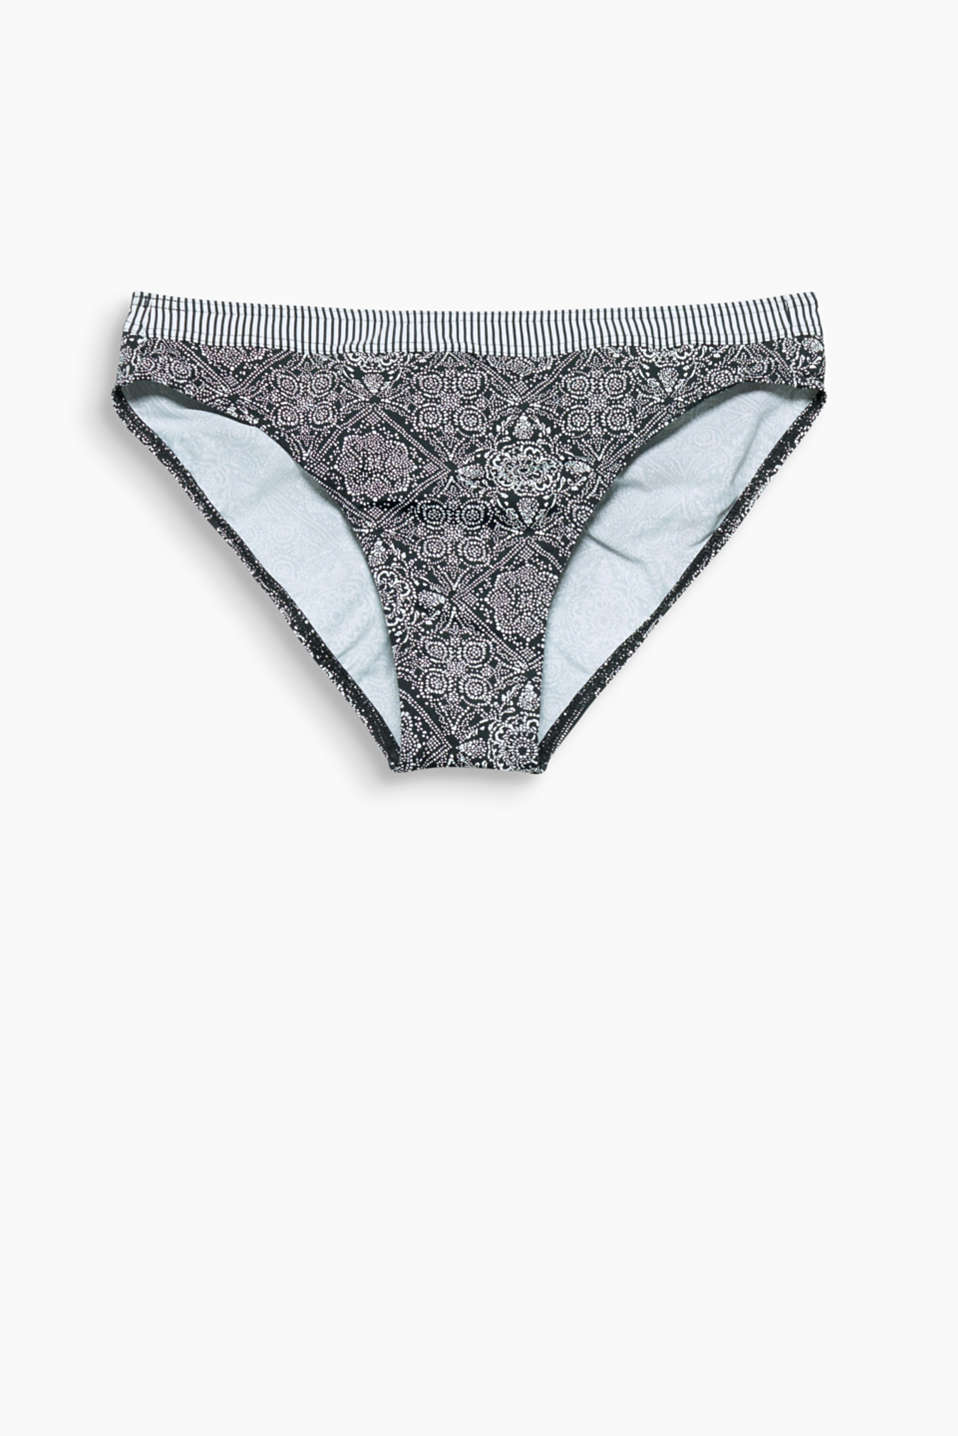 Collection SAN DIEGO - the combination of the ornament print and striped trim gives these bikini bottoms their lush look!